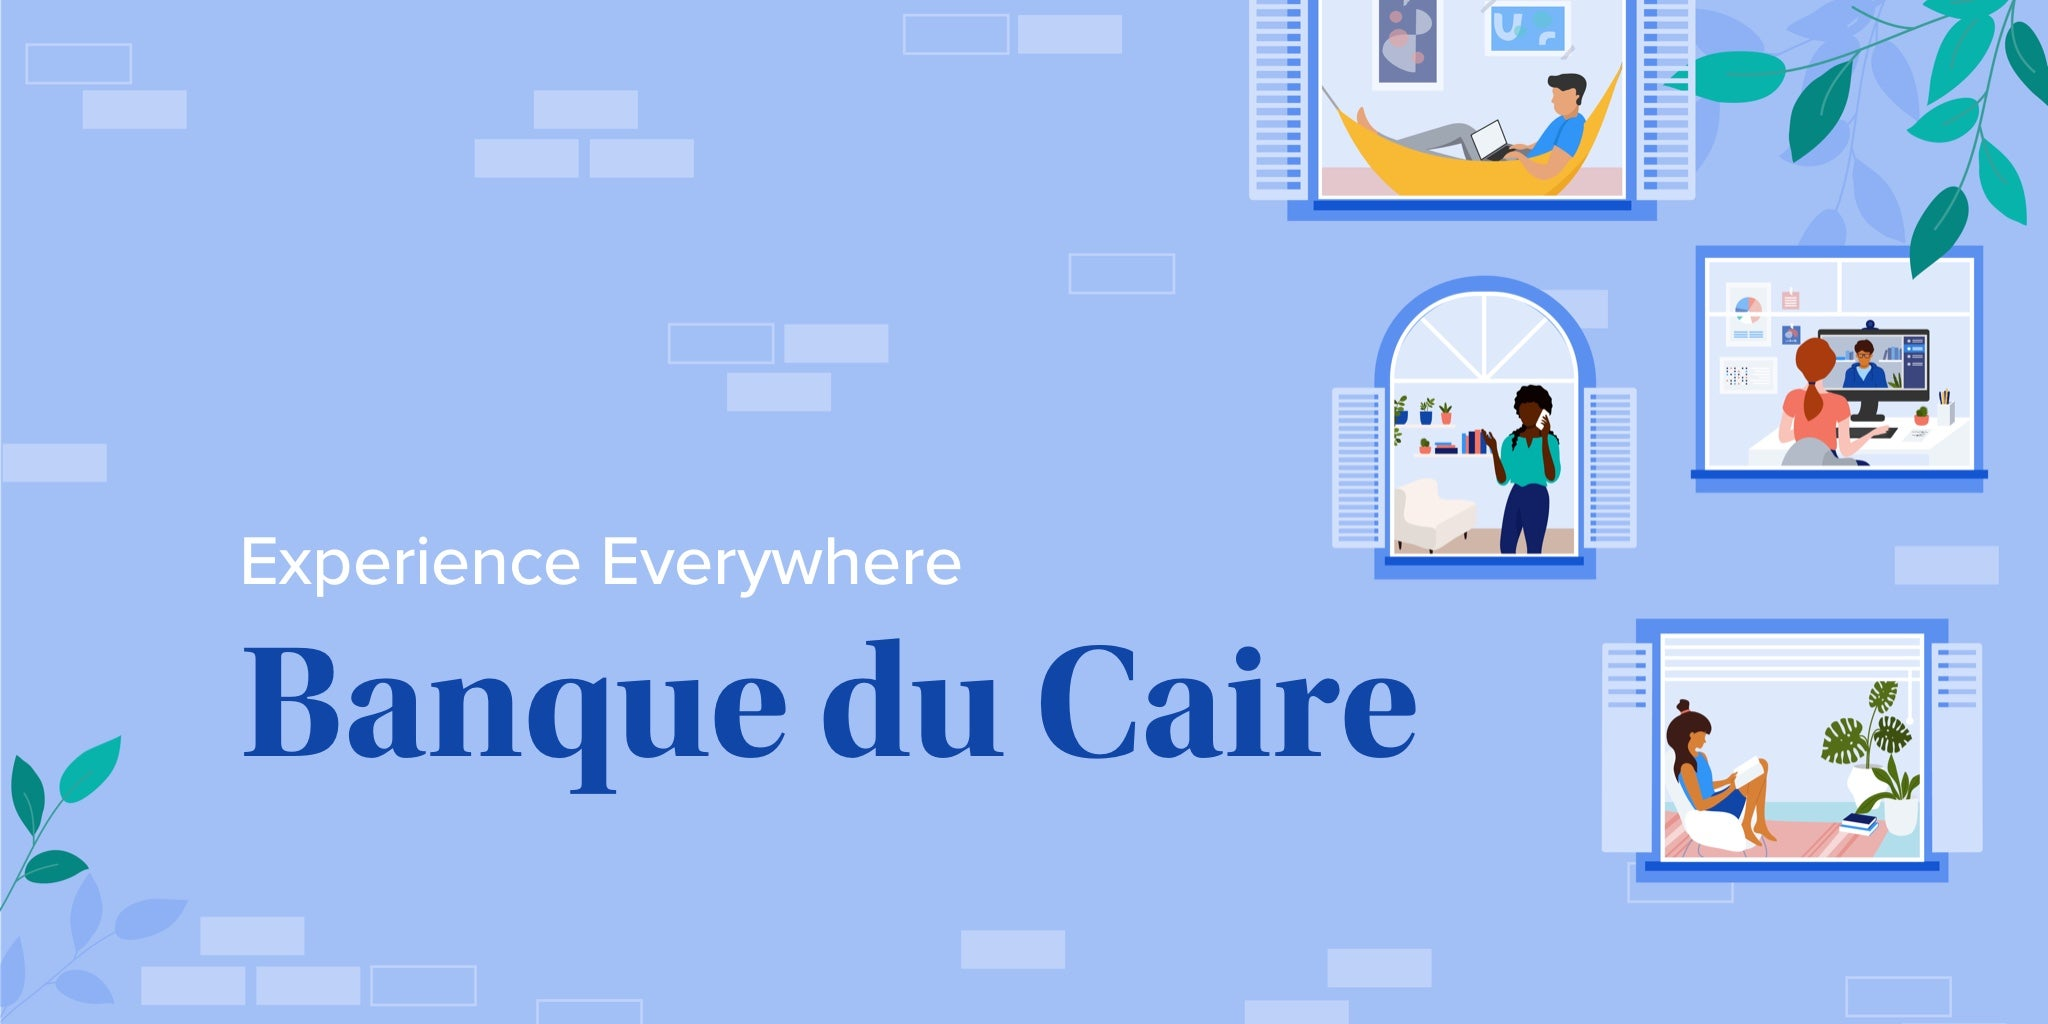 Banque du Caire: Delivering Technology Firsts to Customers & Employees